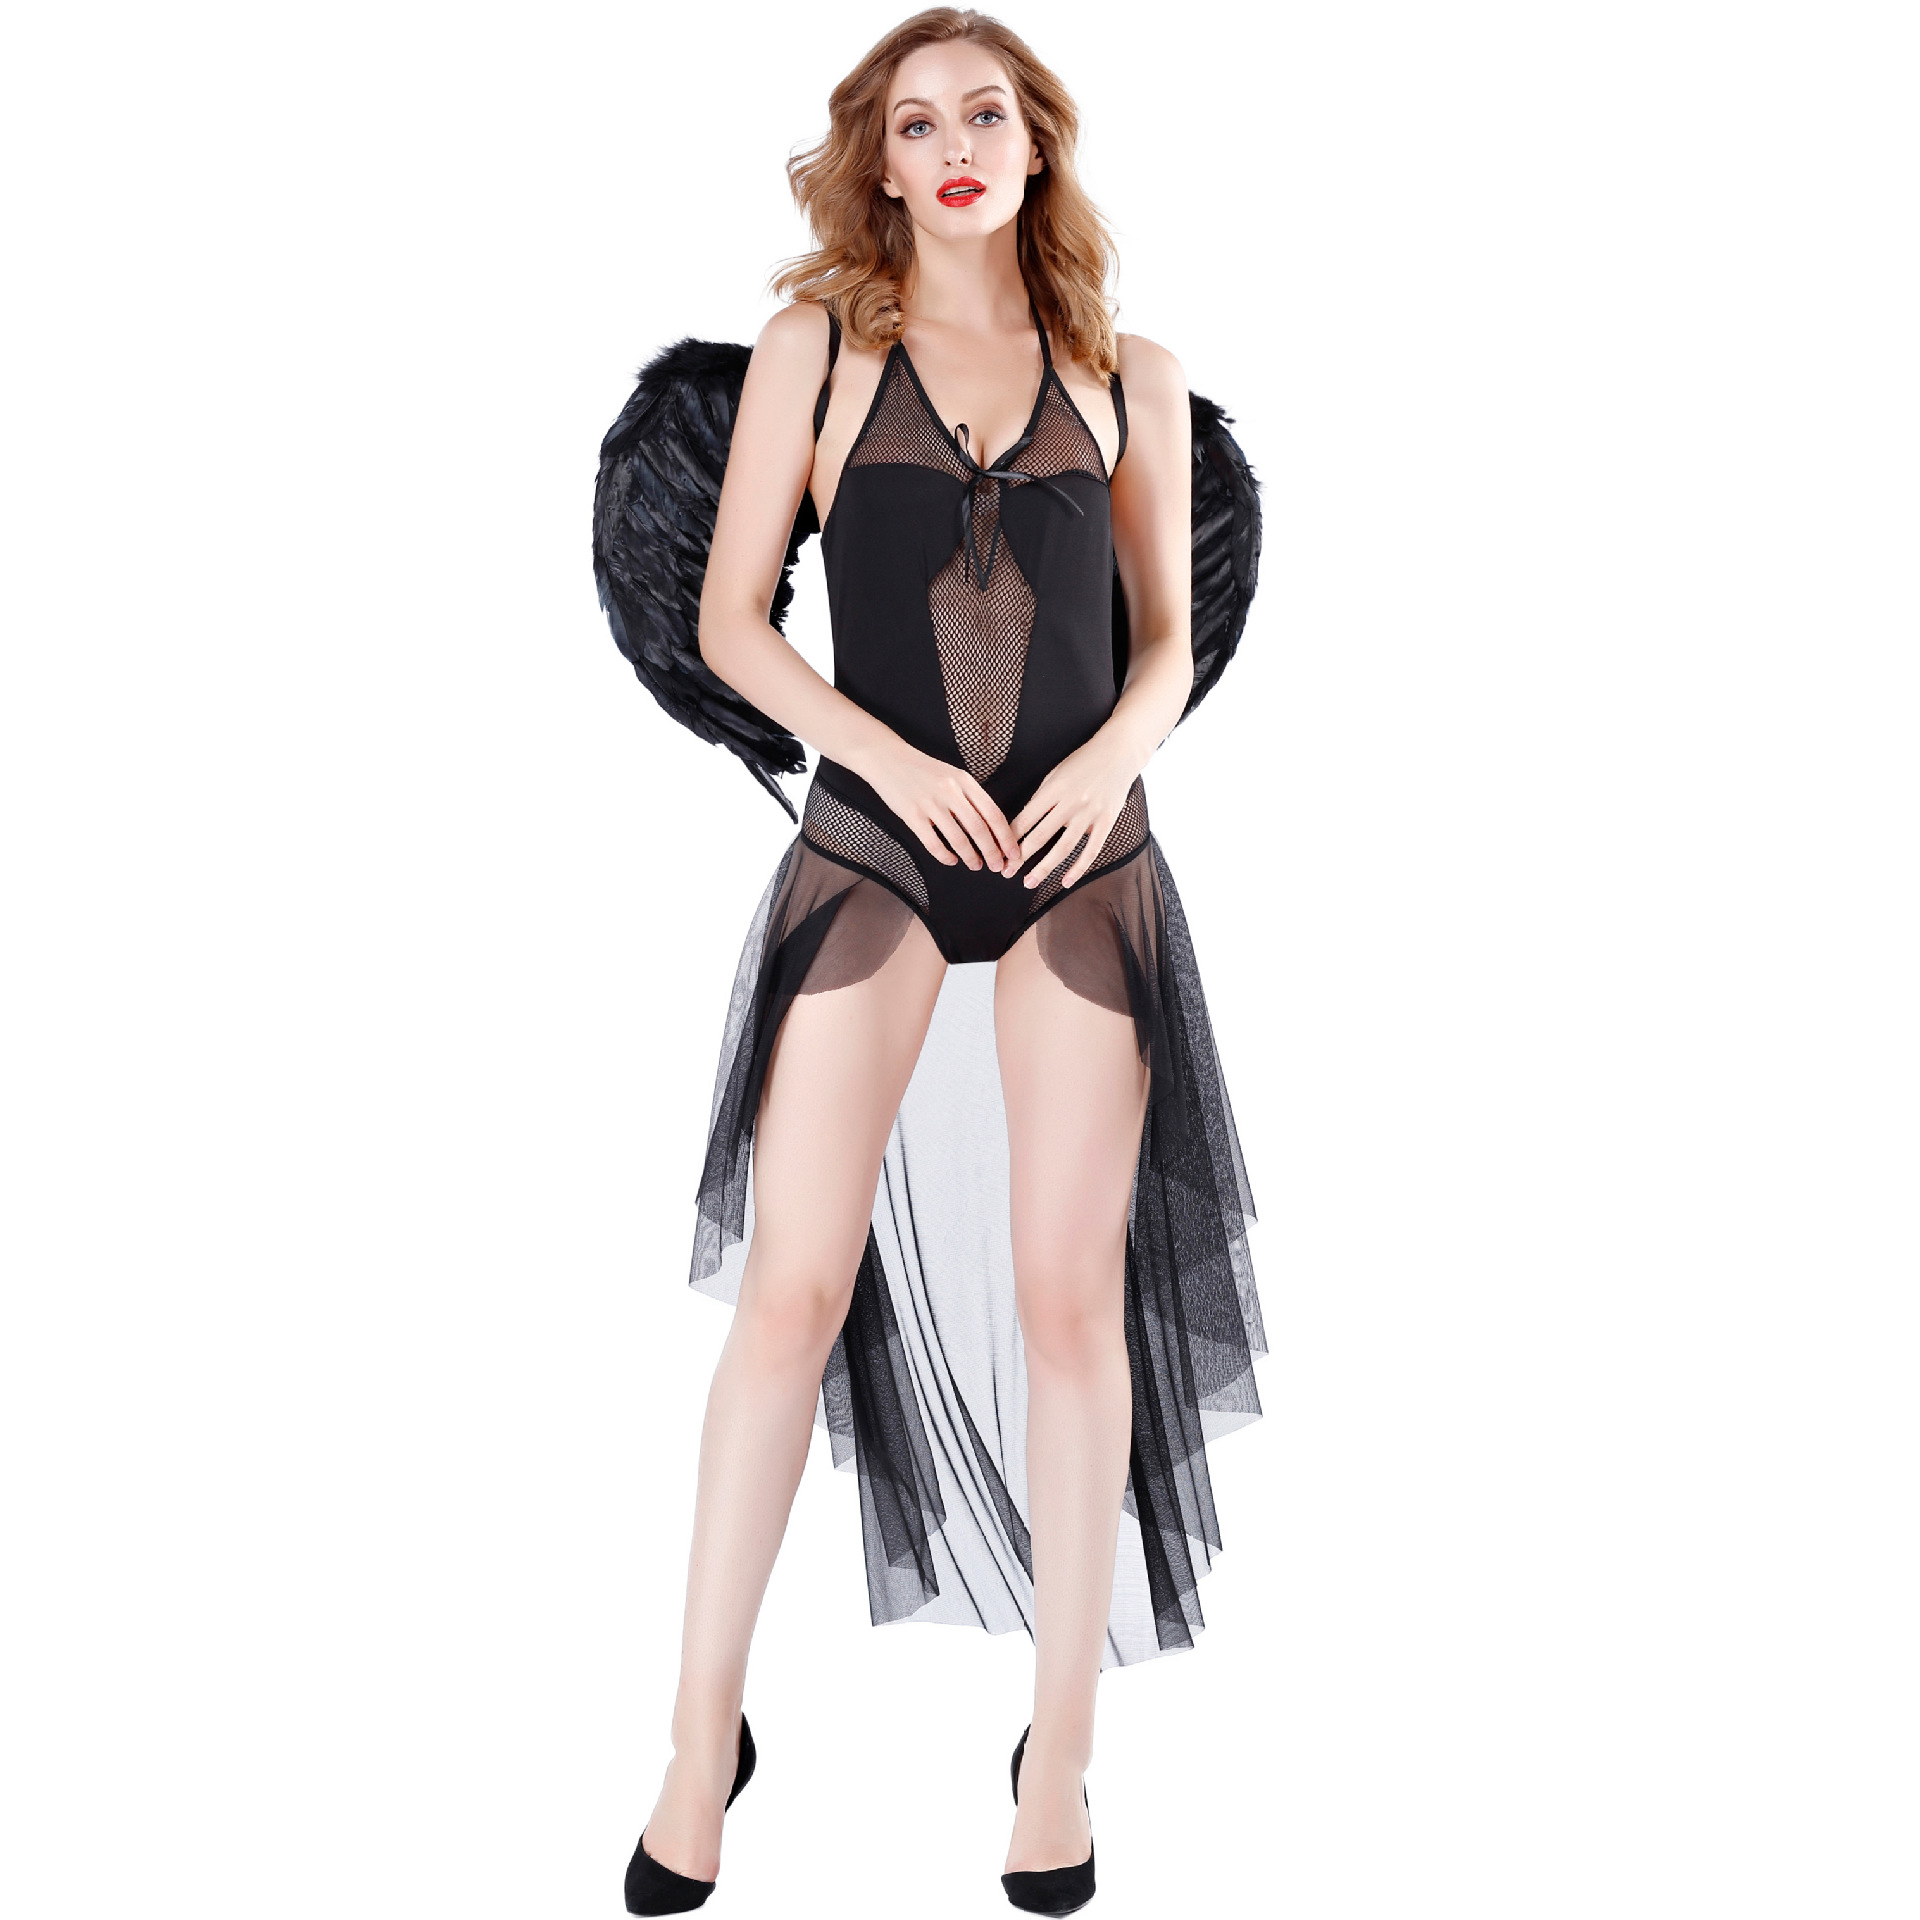 Dark angel adult role play night club cos bar sexy stage Halloween DS show Costume